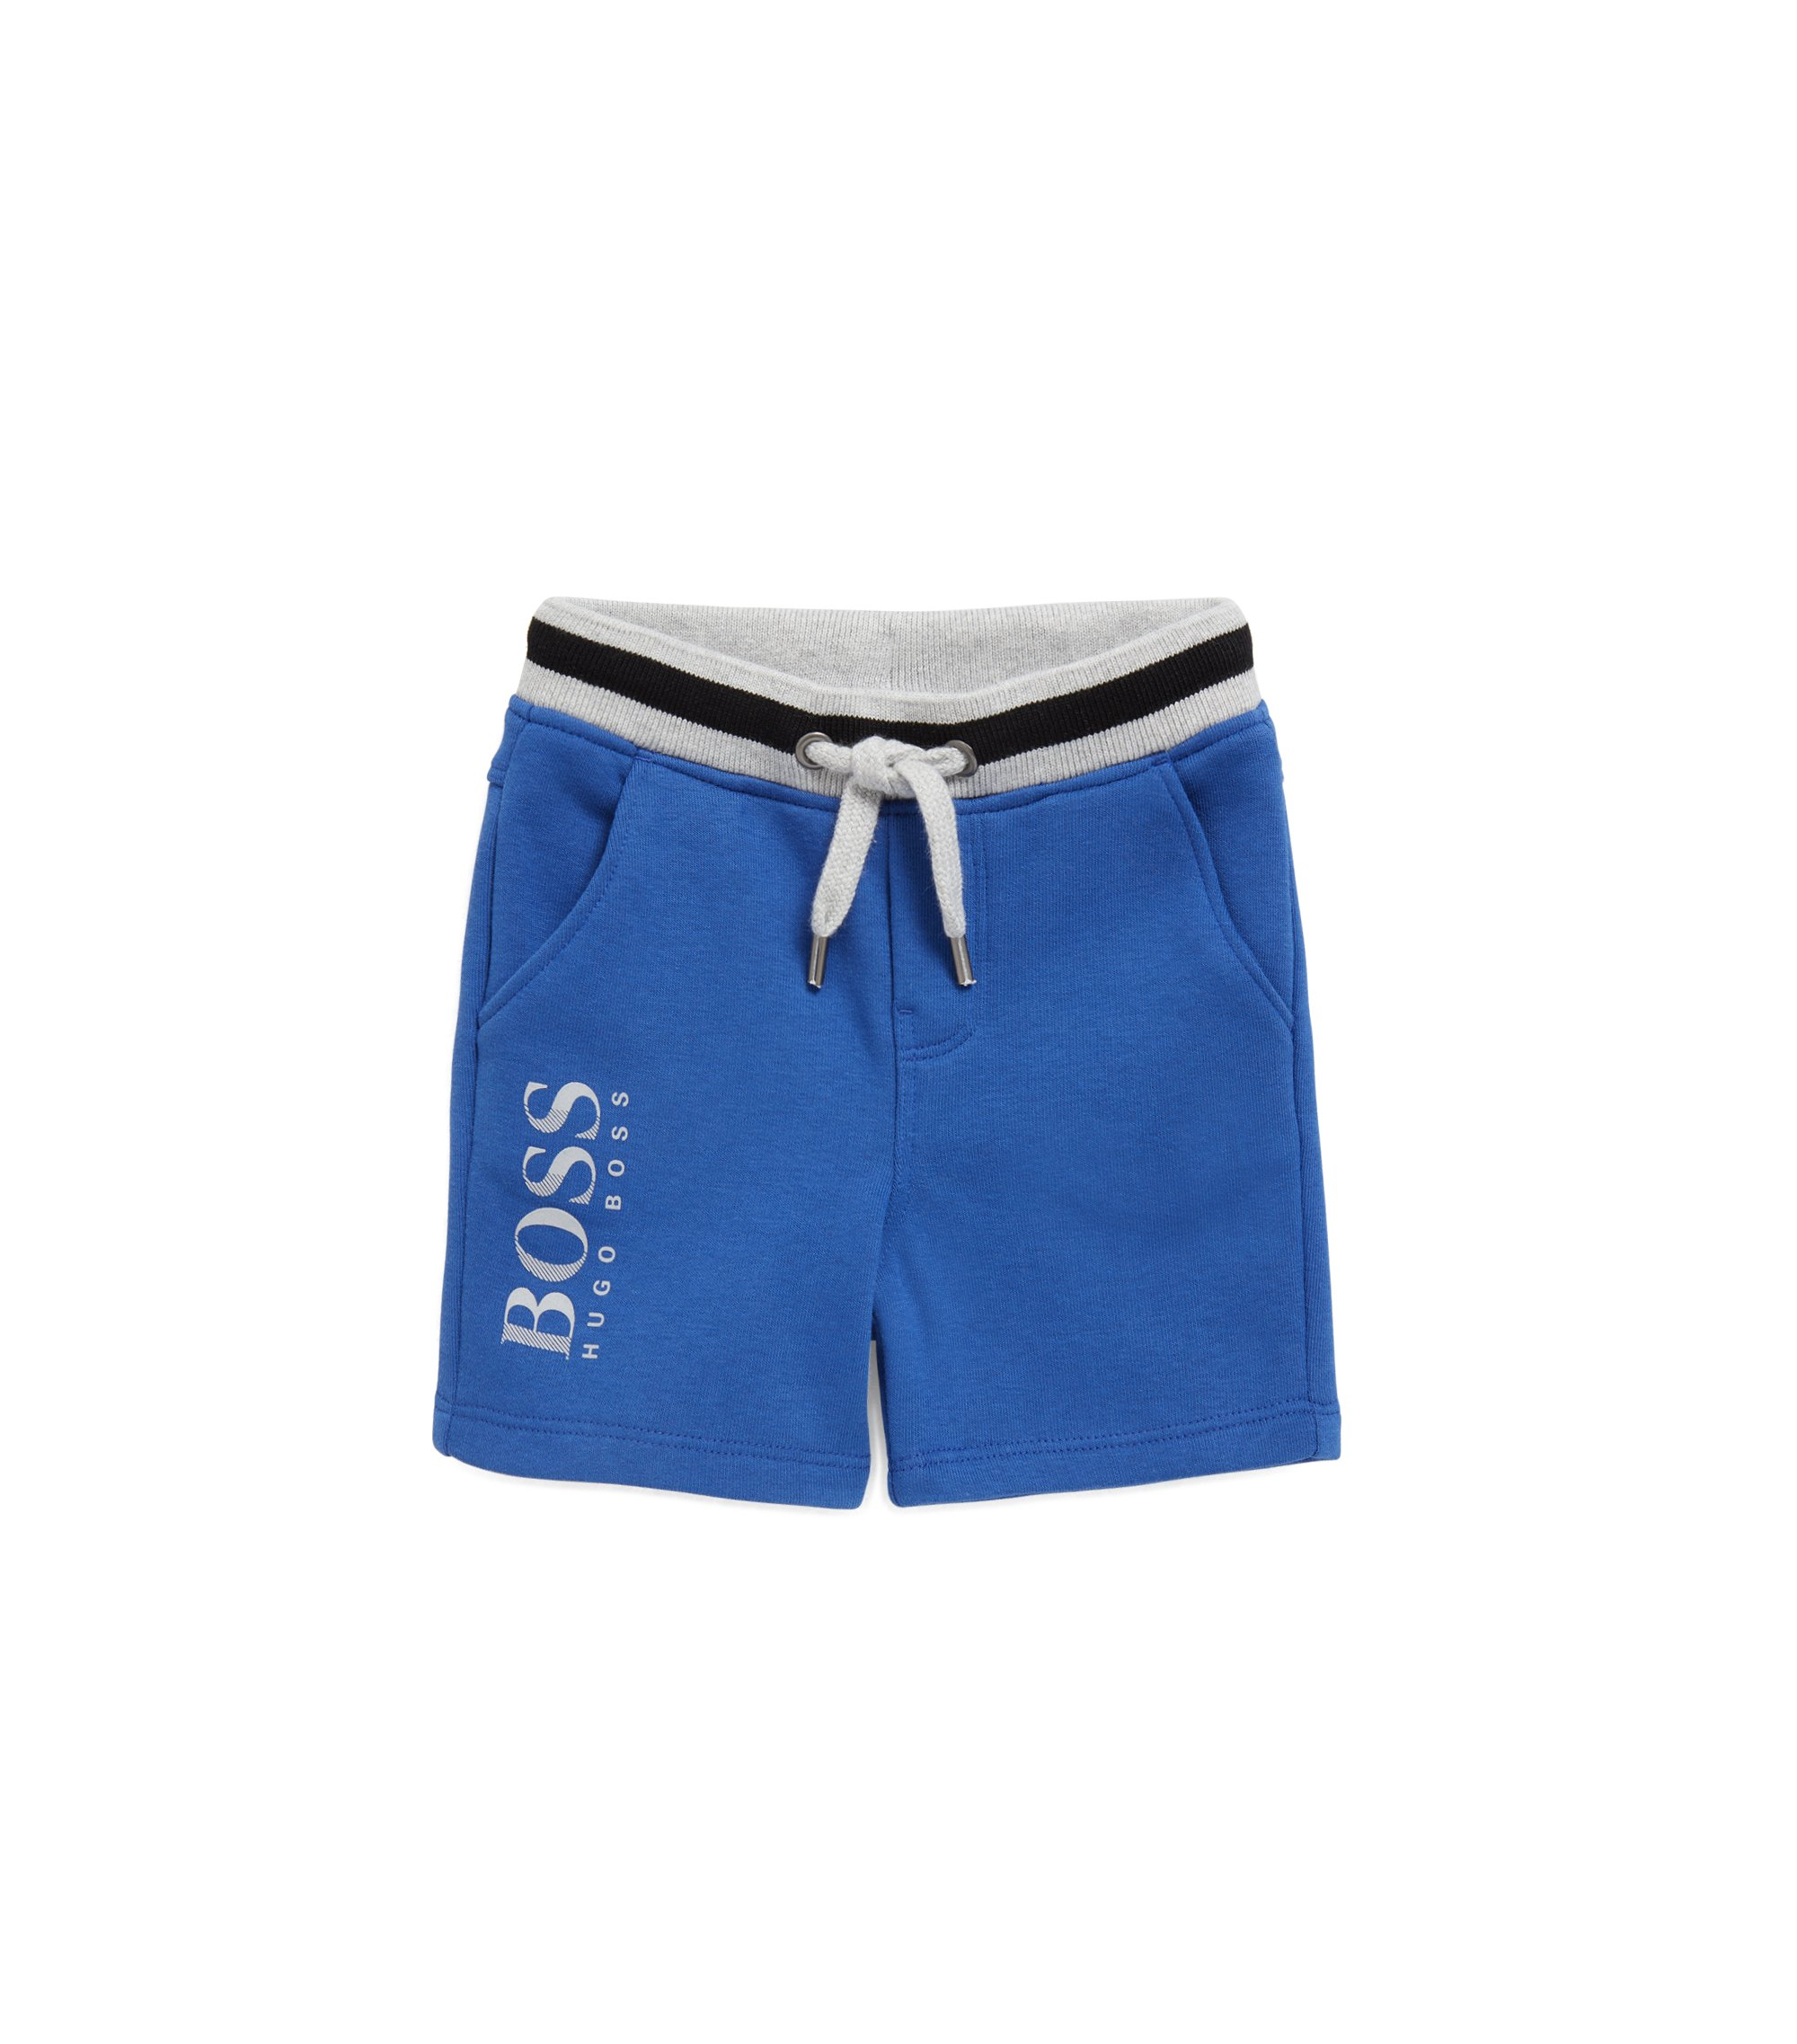 Kids-Bermuda-Shorts aus French Terry, Blau